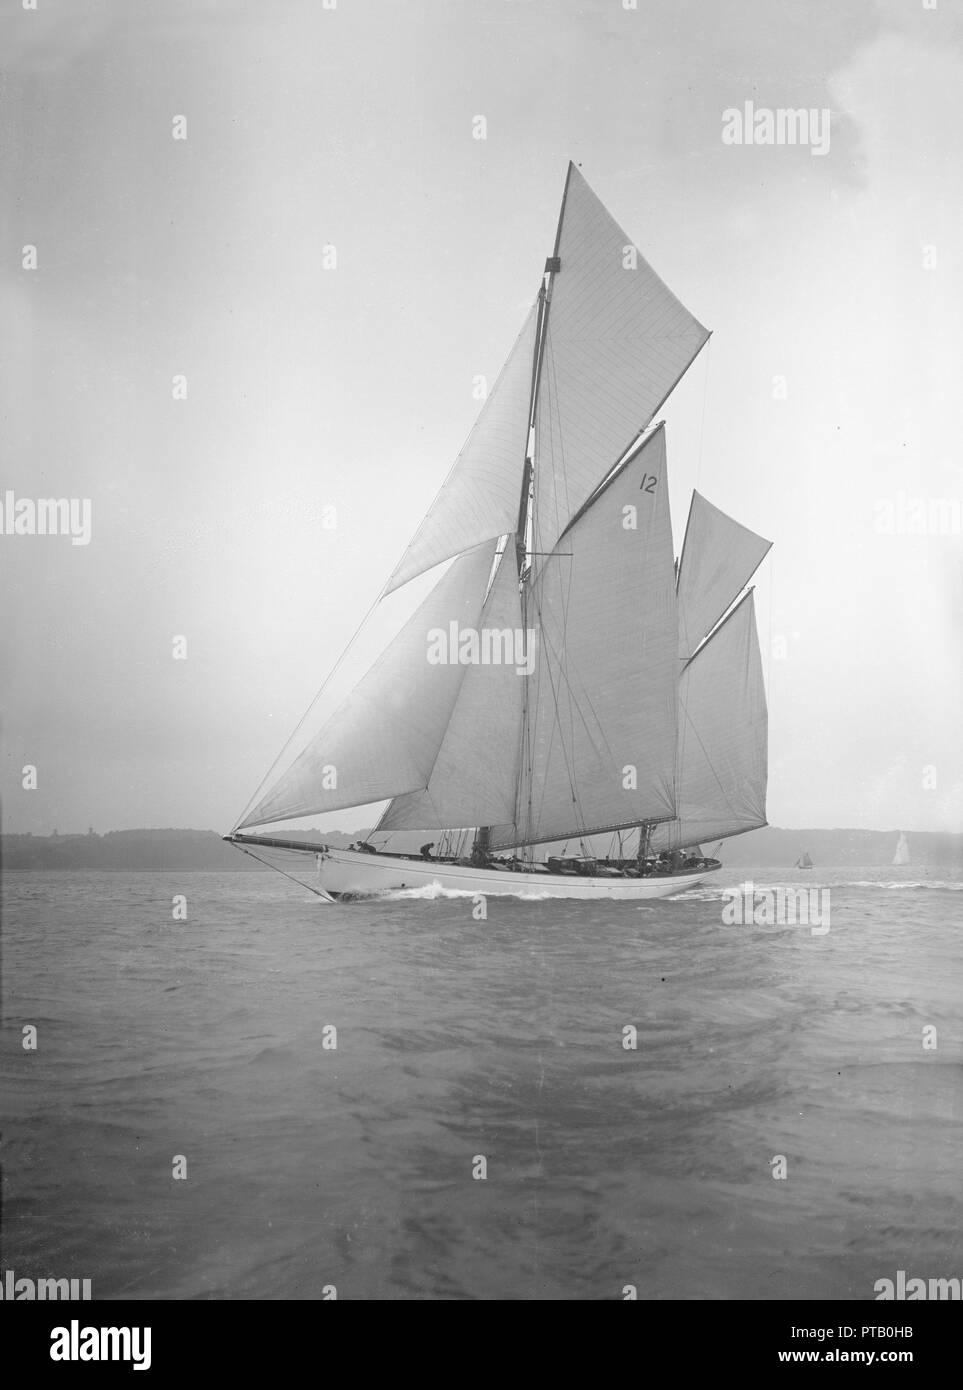 The 96 ft ketch 'Julnar', 1911. Creator: Kirk & Sons of Cowes. Stock Photo